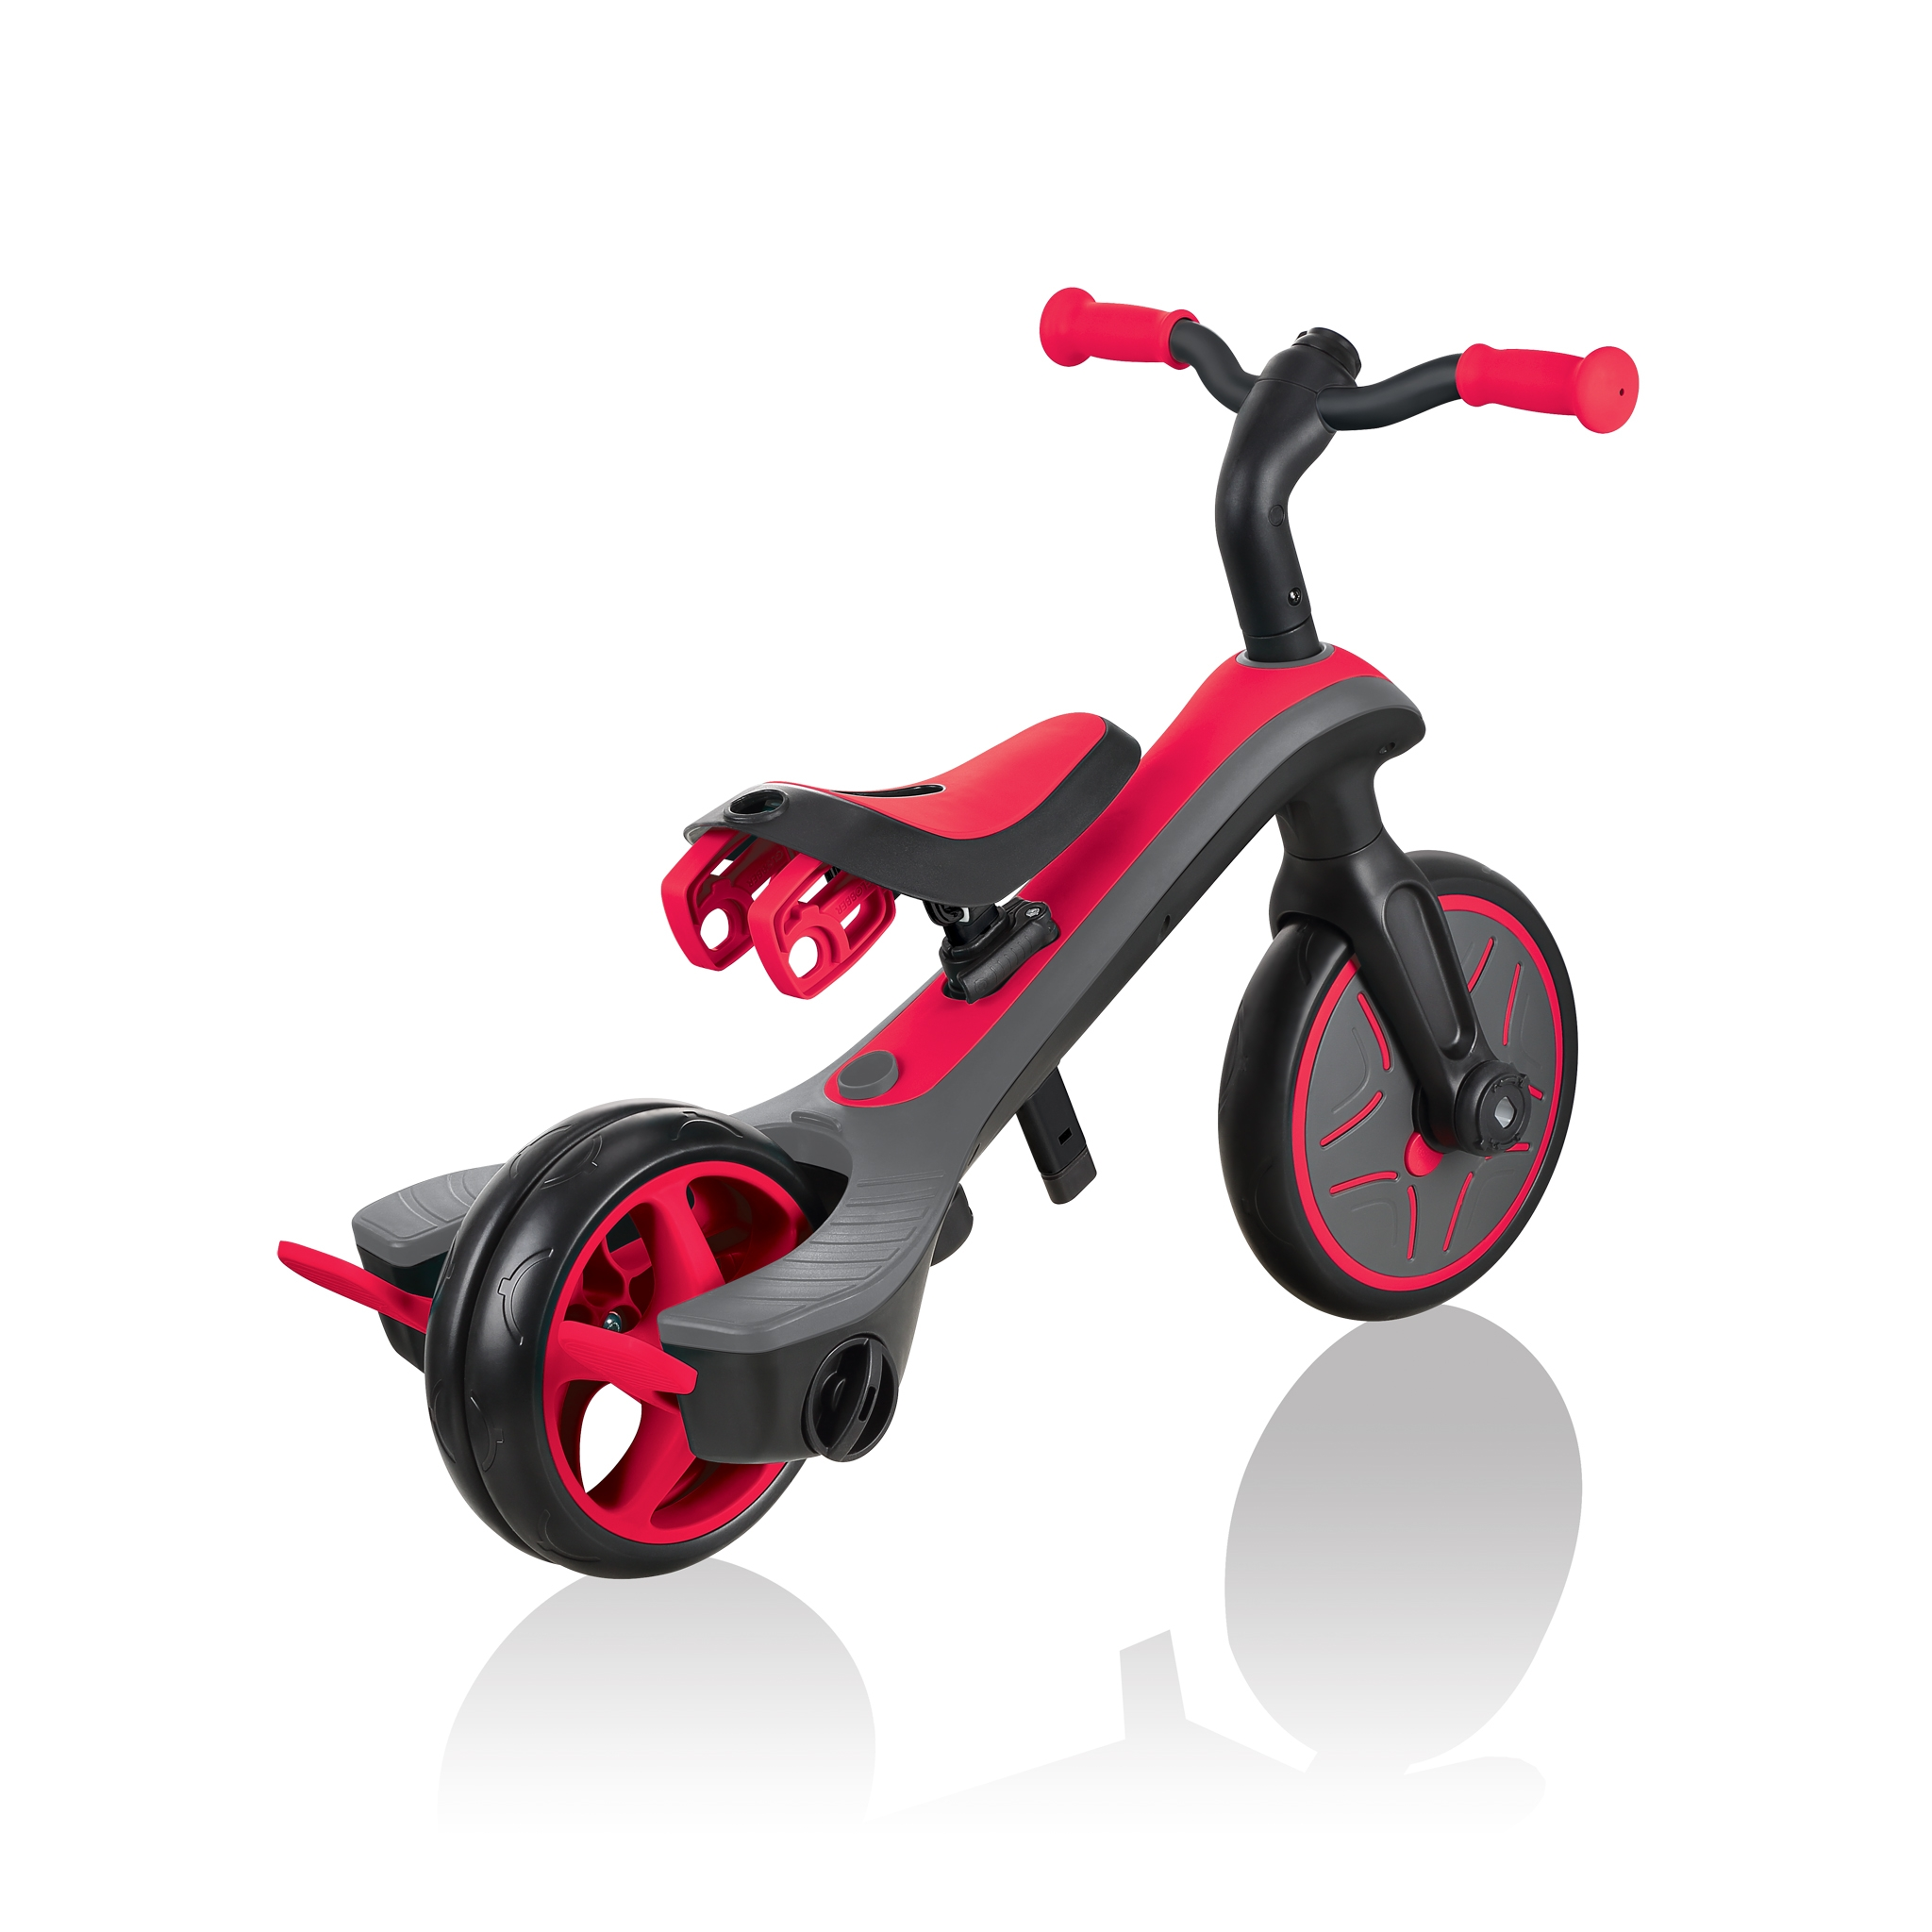 Globber-EXPLORER-TRIKE-4in1-all-in-one-baby-tricycle-and-kids-balance-bike-with-smart-pedal-storage 9